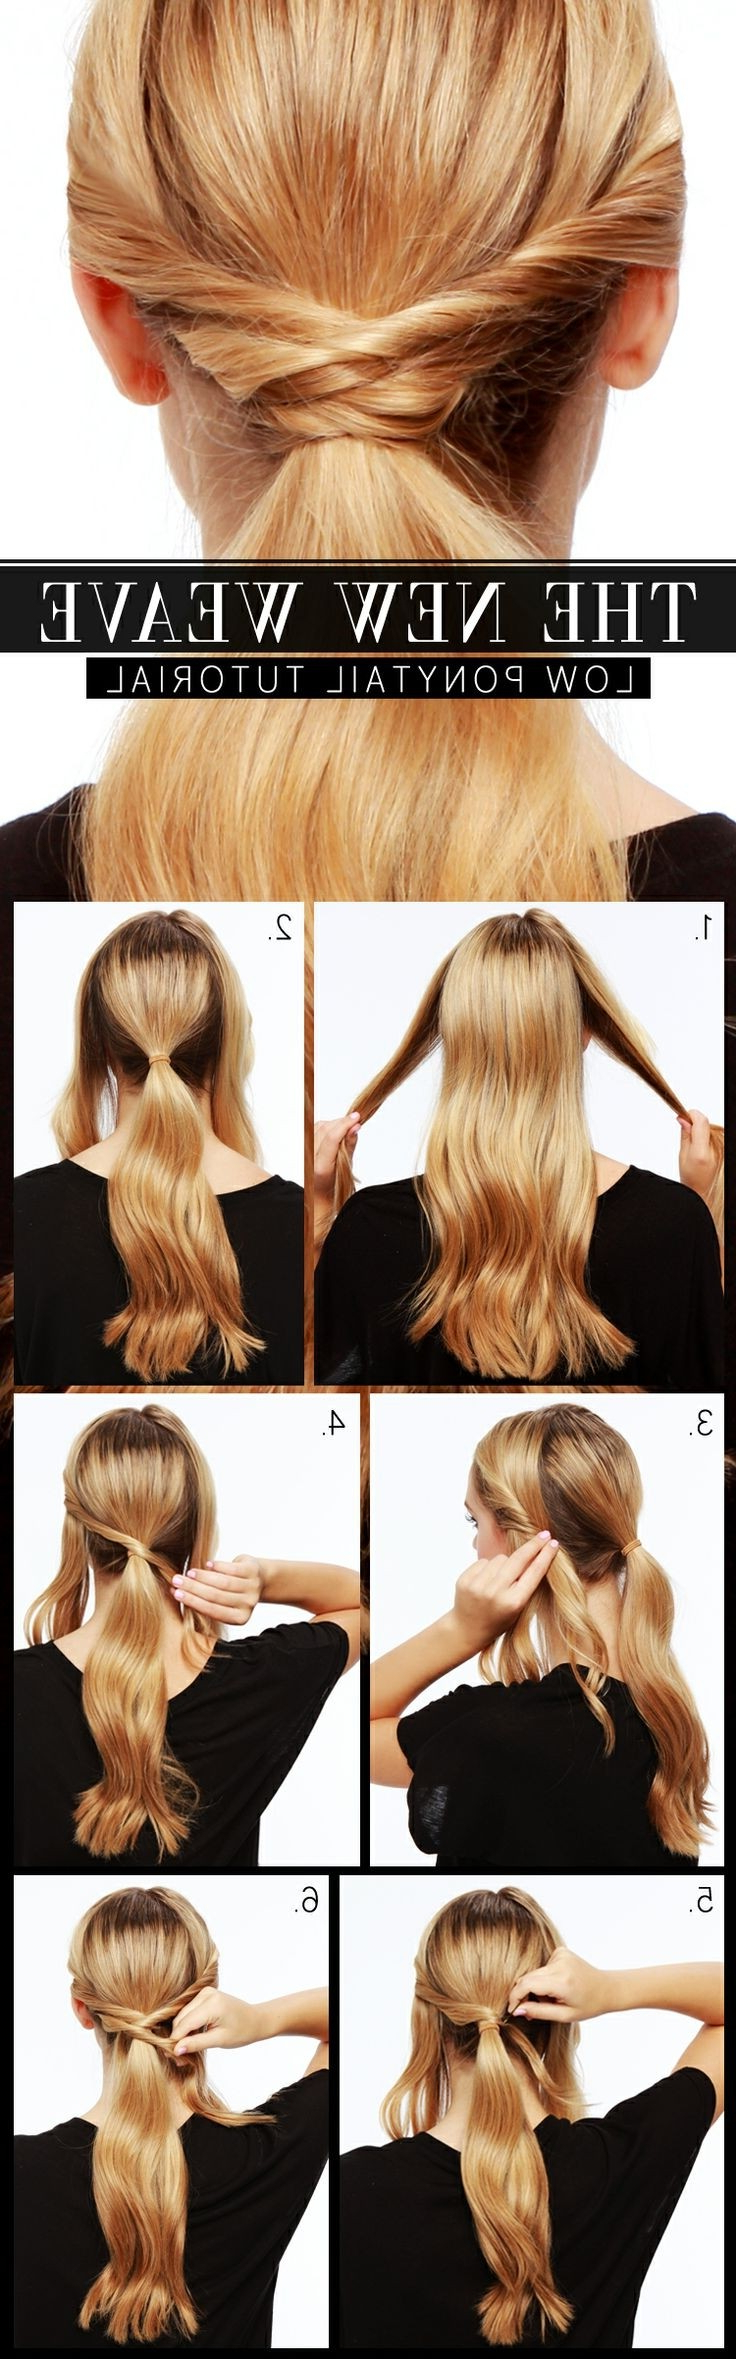 15 Cute & Easy Ponytails – Sure Champ Intended For Most Popular Triple Weaving Ponytail Hairstyles With A Bow (View 1 of 20)